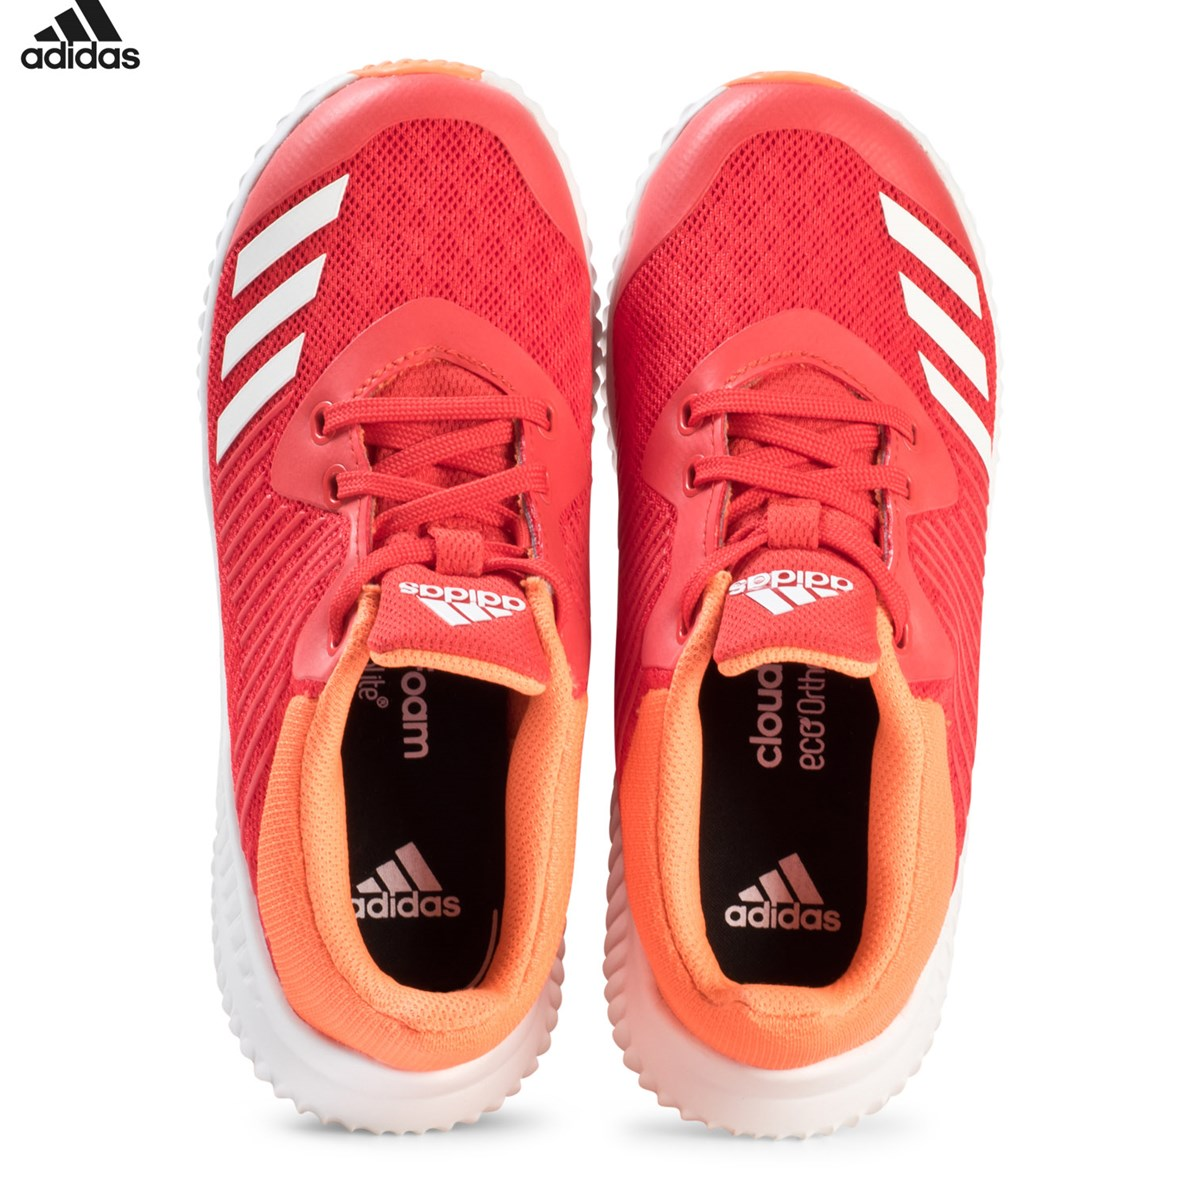 adidas Performance Red and Orange FortaRun Trainers